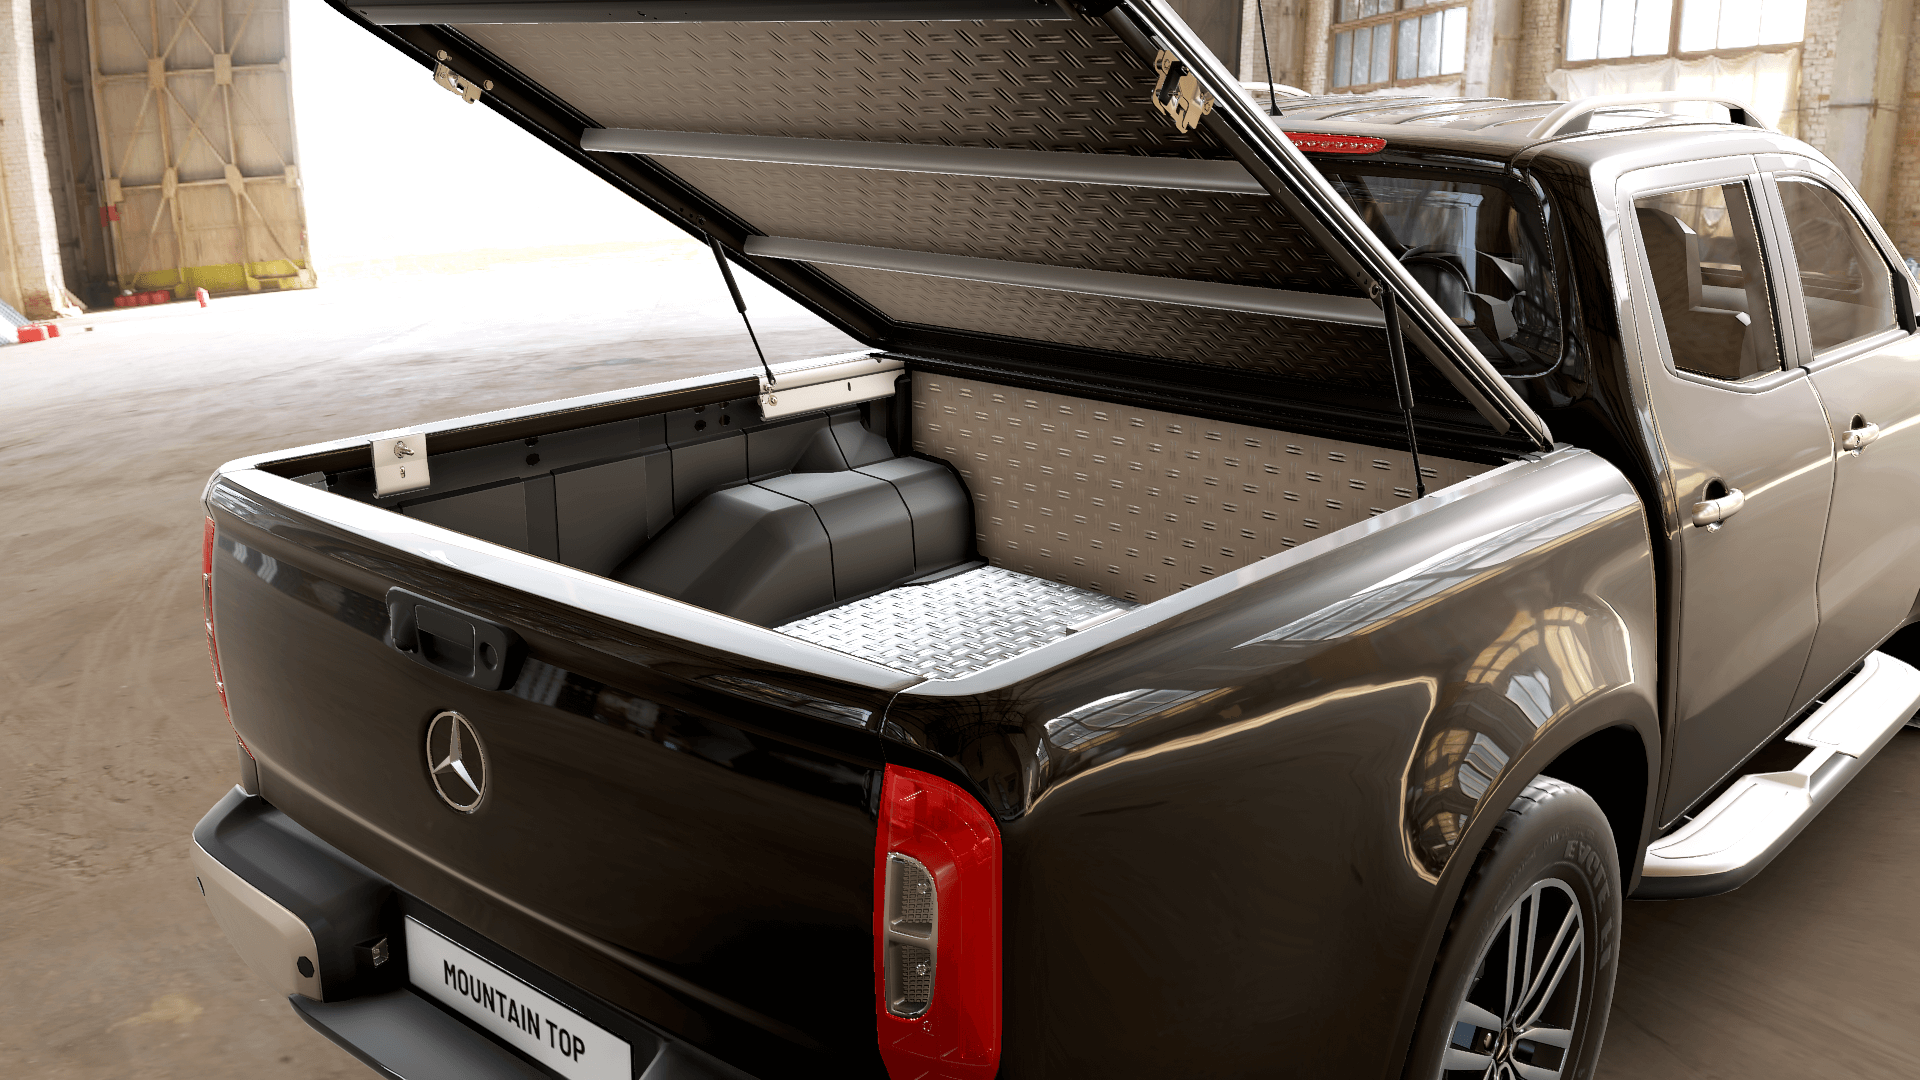 Mountain Top Hard Lid Style pickup truck tonneau cover and alu bedliner